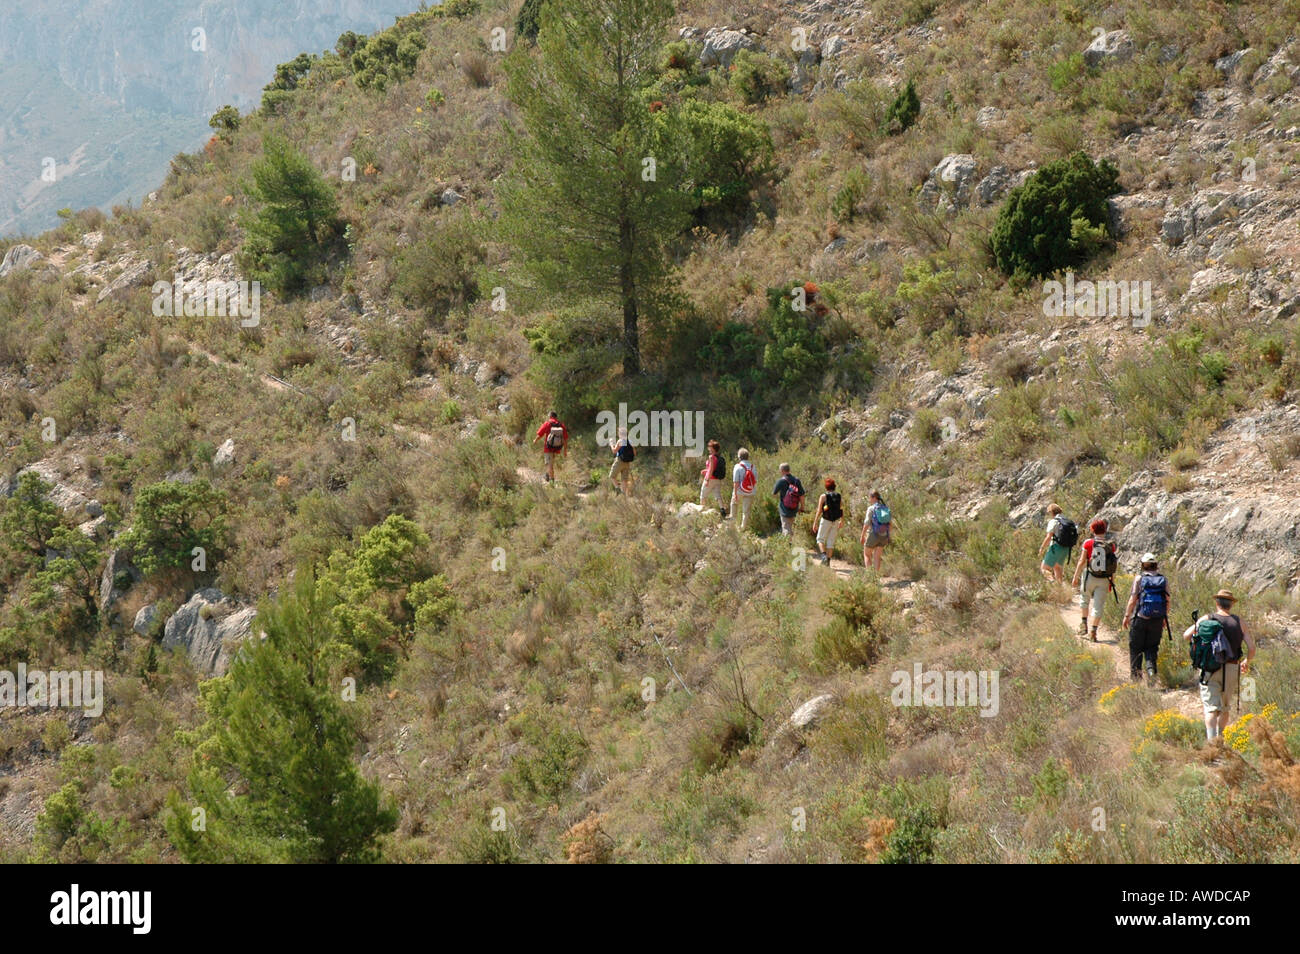 Hiking group, Sierra de Aitana, Costa Blanca, Spain, Europe - Stock Image